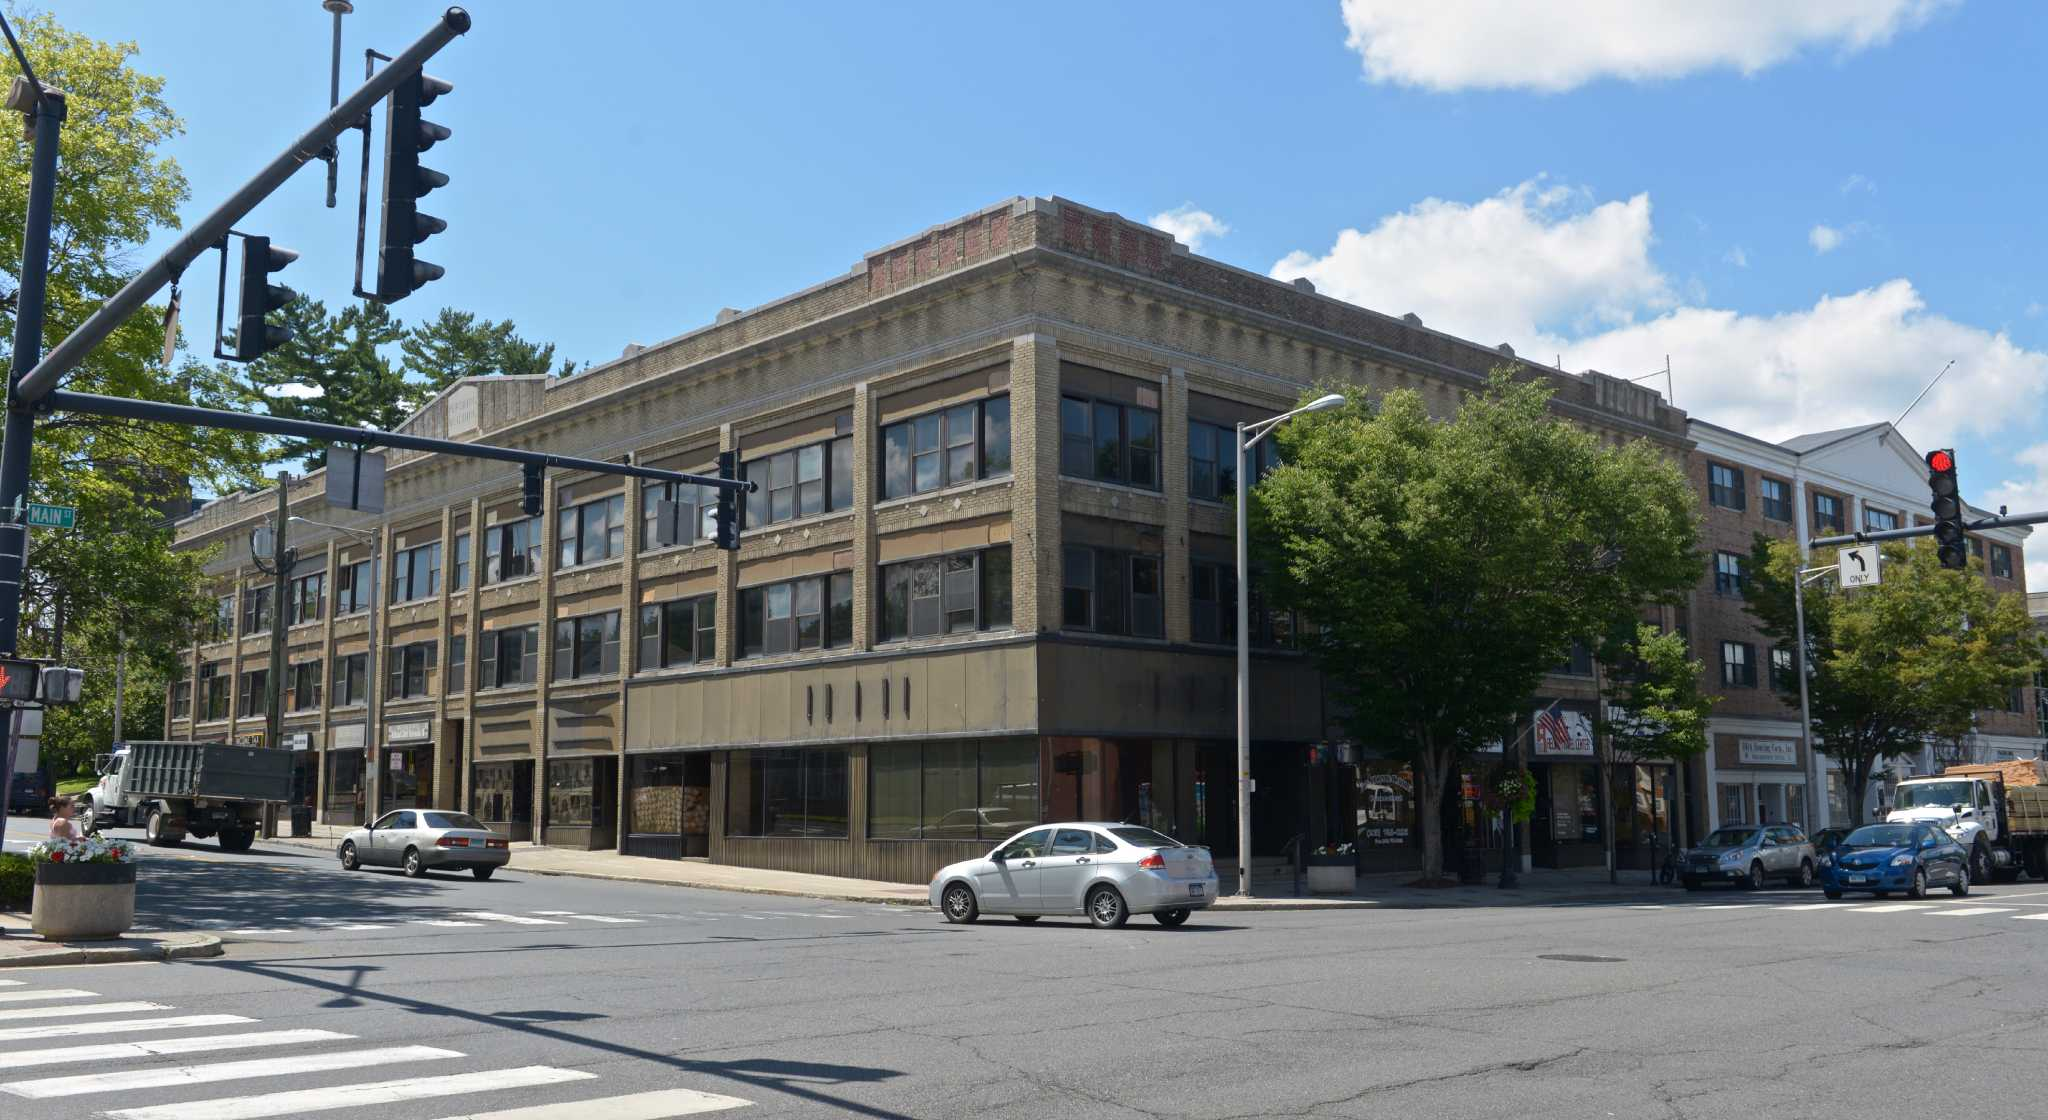 Community college lease a boon for downtown danbury for The danbury